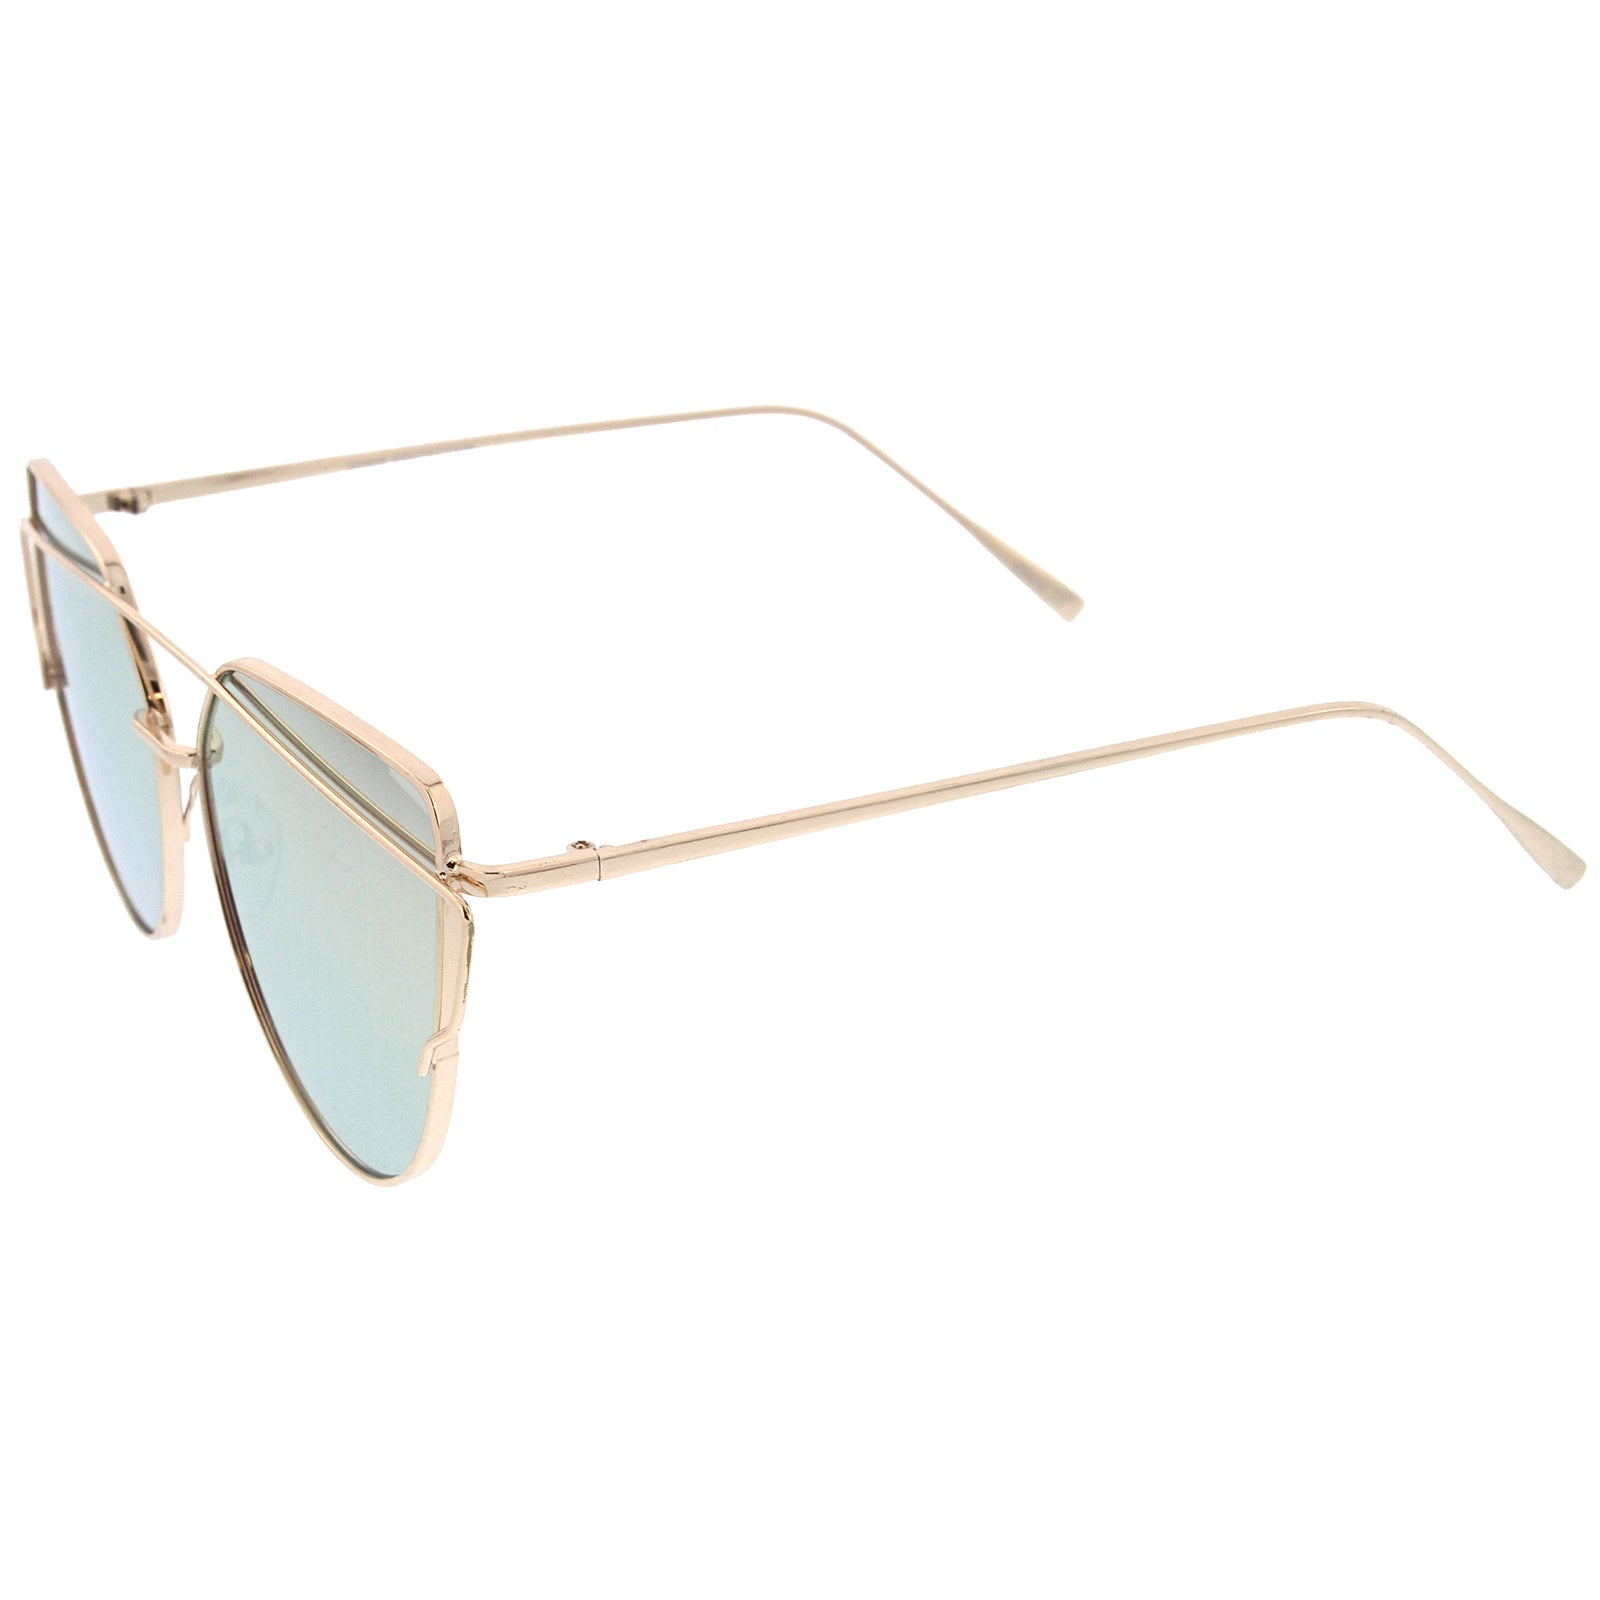 Oversize Metal Frame Thin Temple Color Mirror Flat Lens Aviator Sunglasses 62mm - sunglass.la - 7